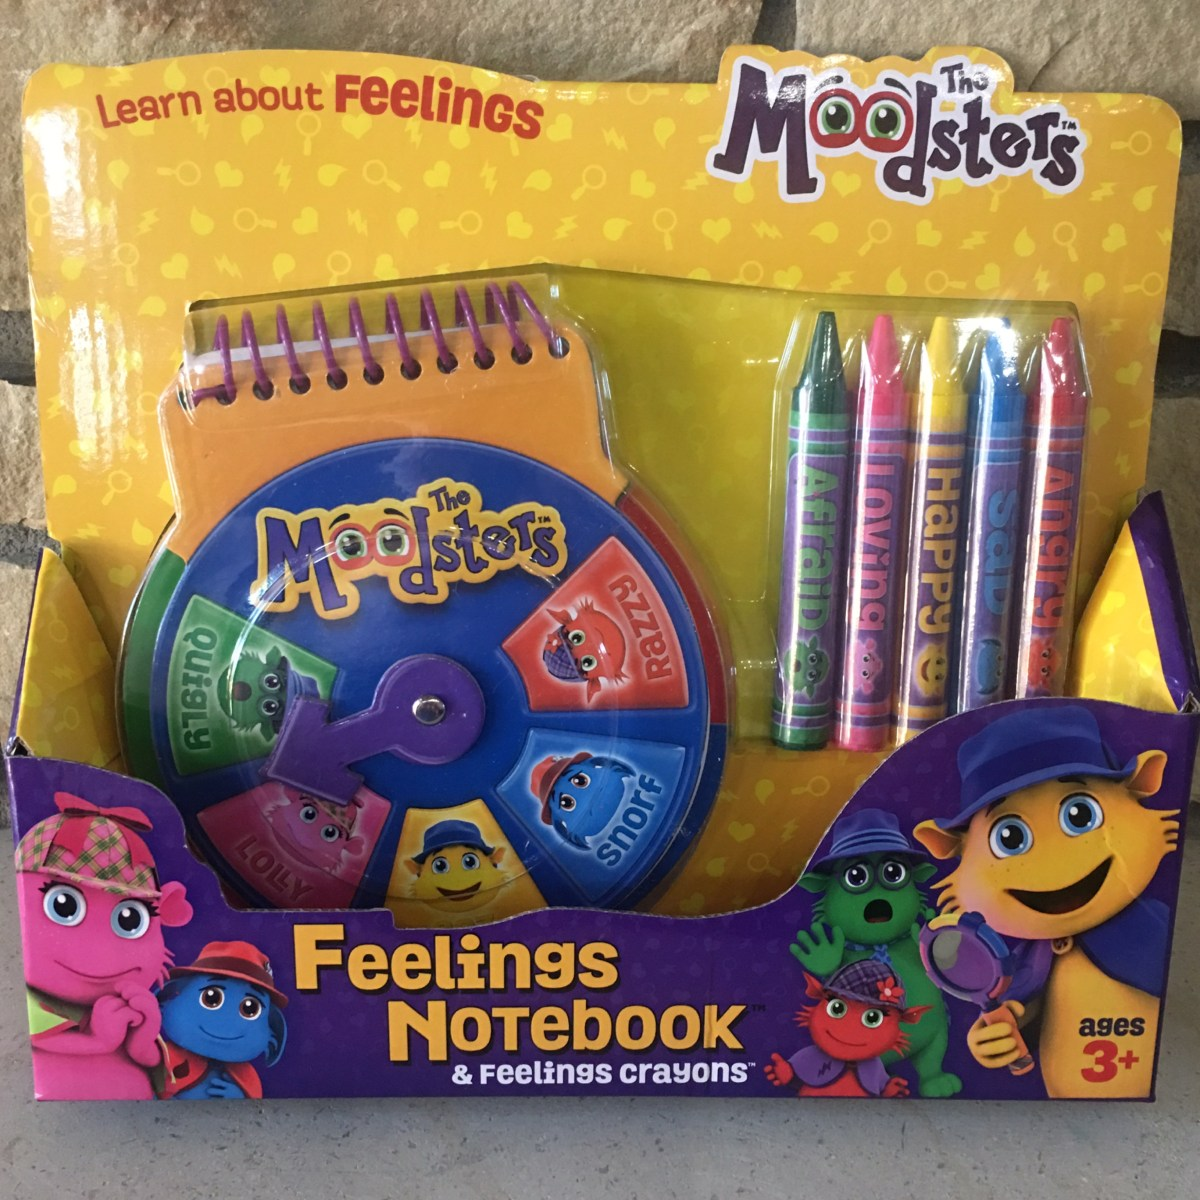 Feeling Notebook and Feeling Crayons by The Moodsters